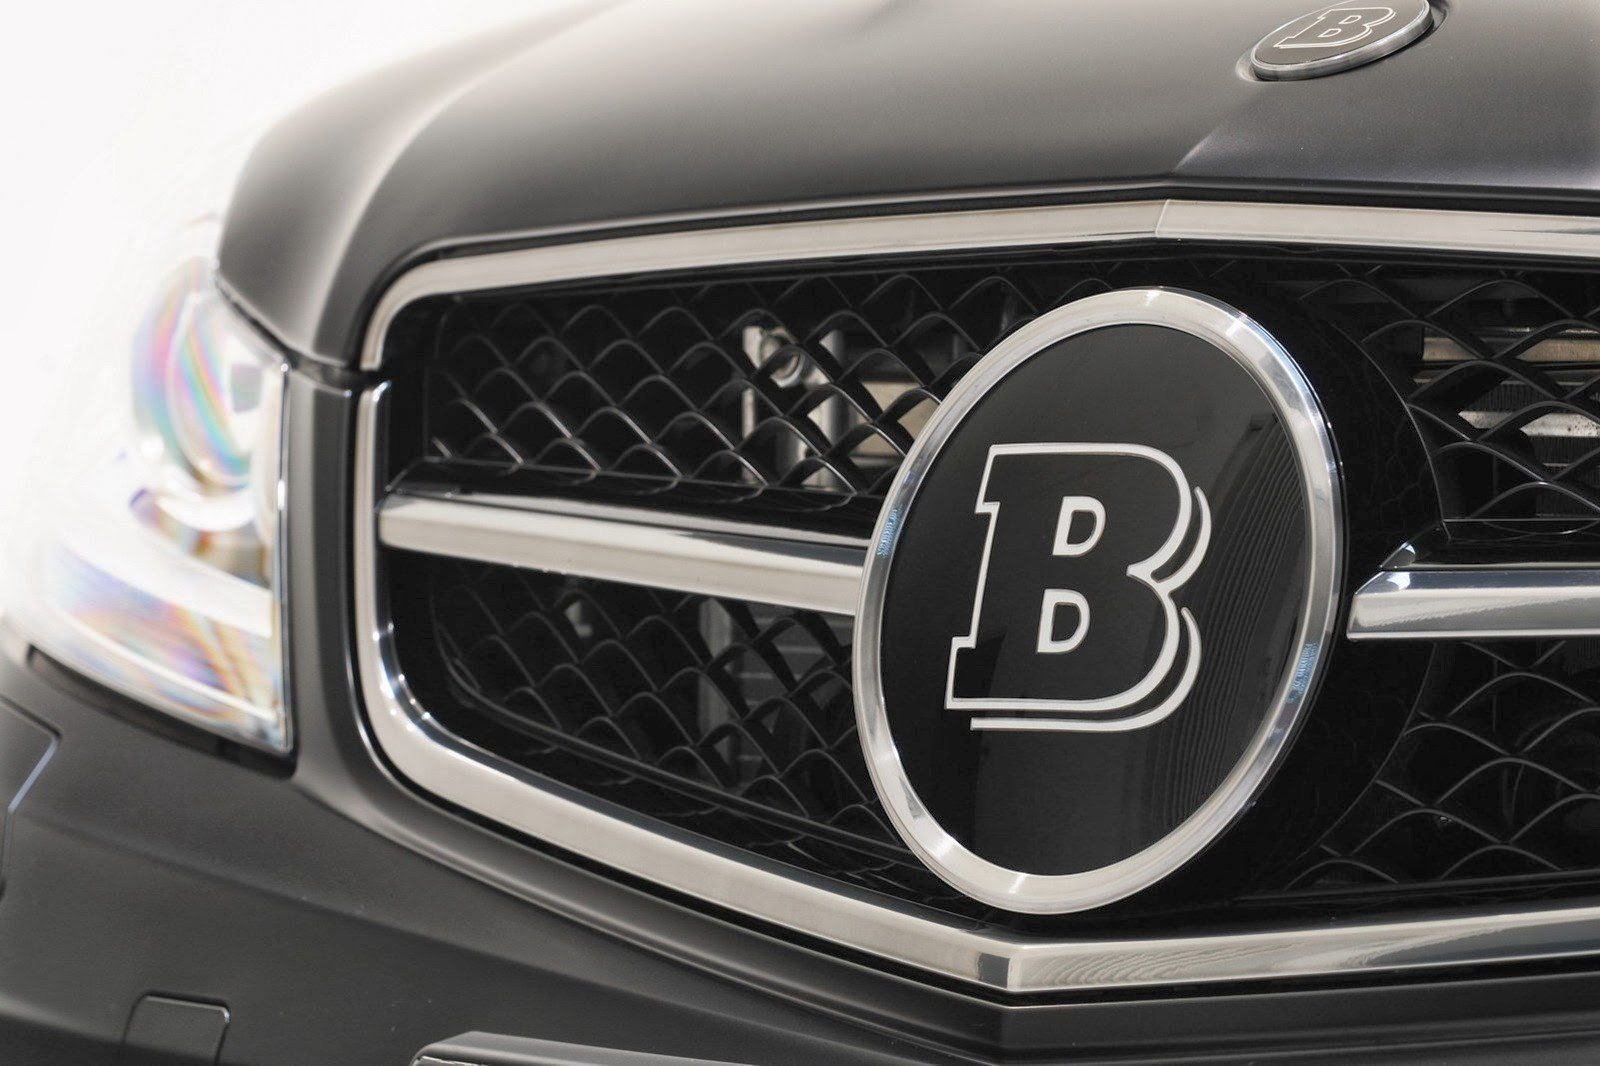 Latest Brabus Logo Cars Hd Wallpapers Desktop Backgrounds For Free Download Original 1024 x 768